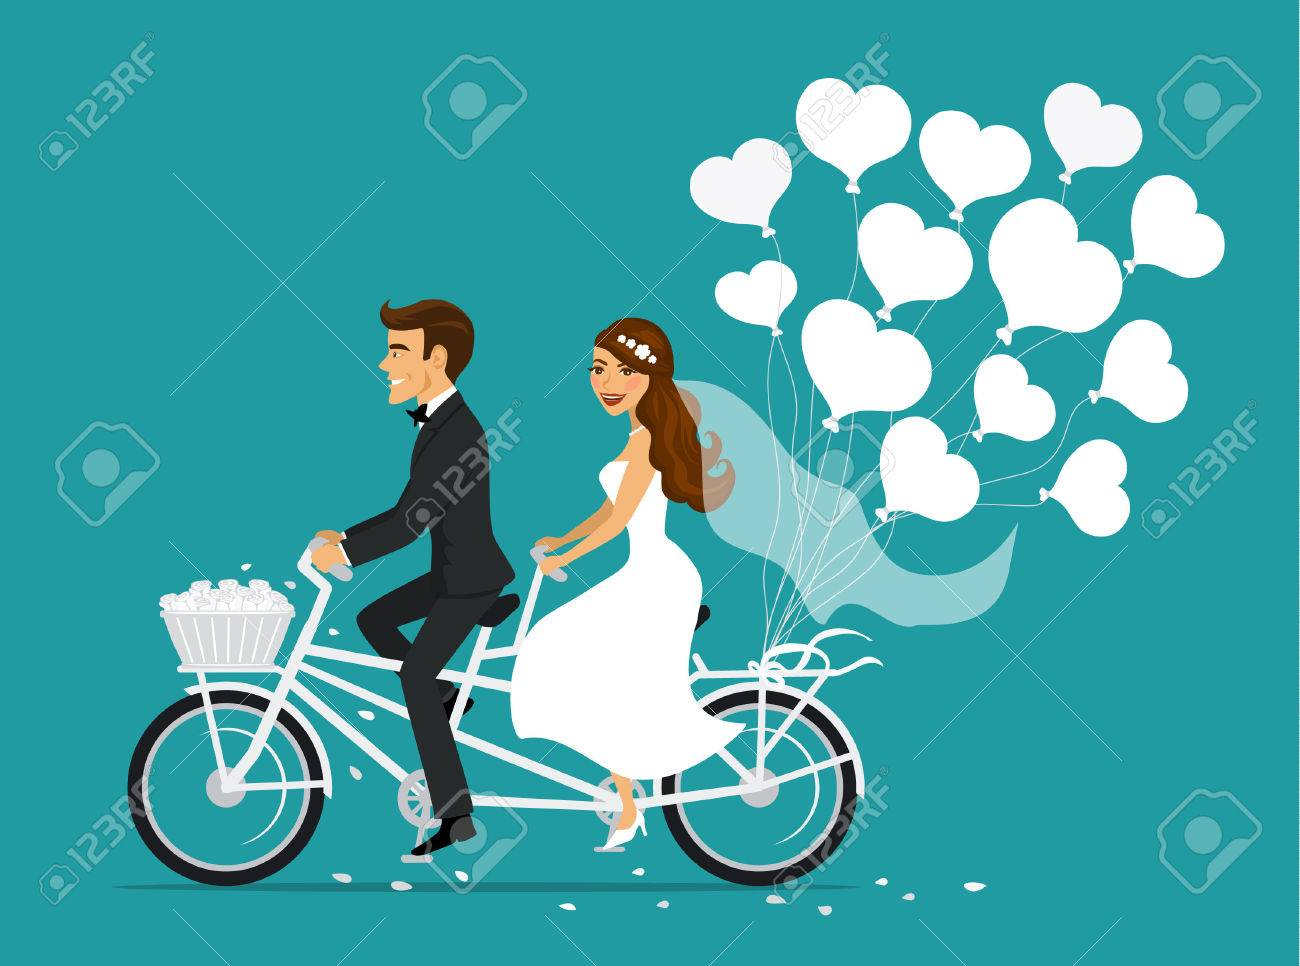 Just married couple bride and groom riding tandem bicycle - 71547216